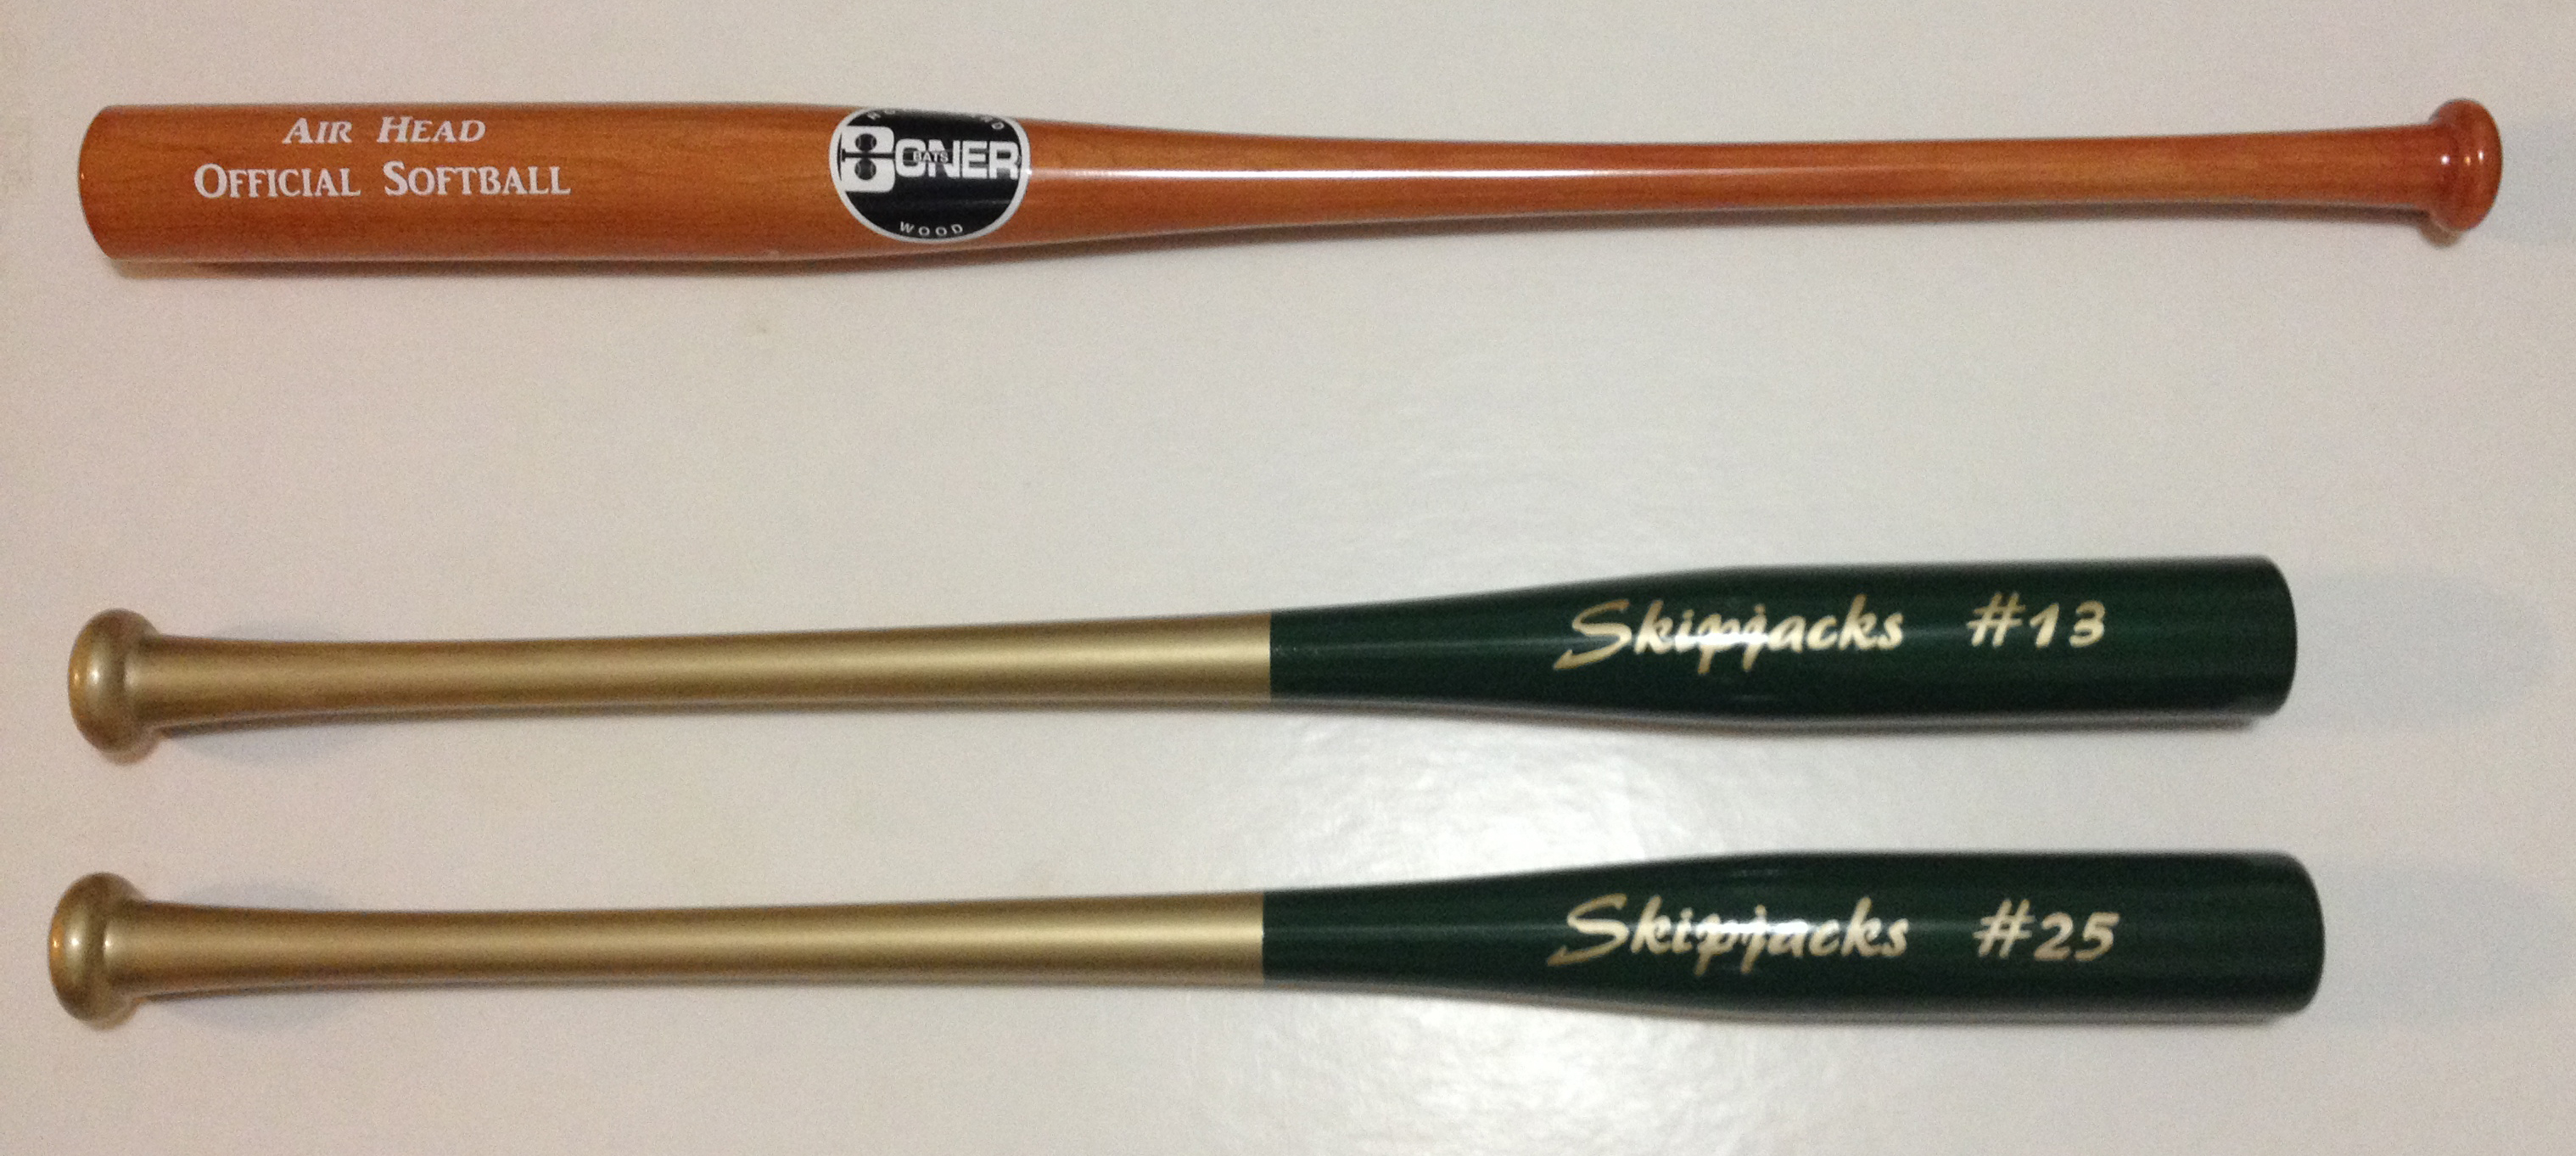 Skipjacks Custom Bats